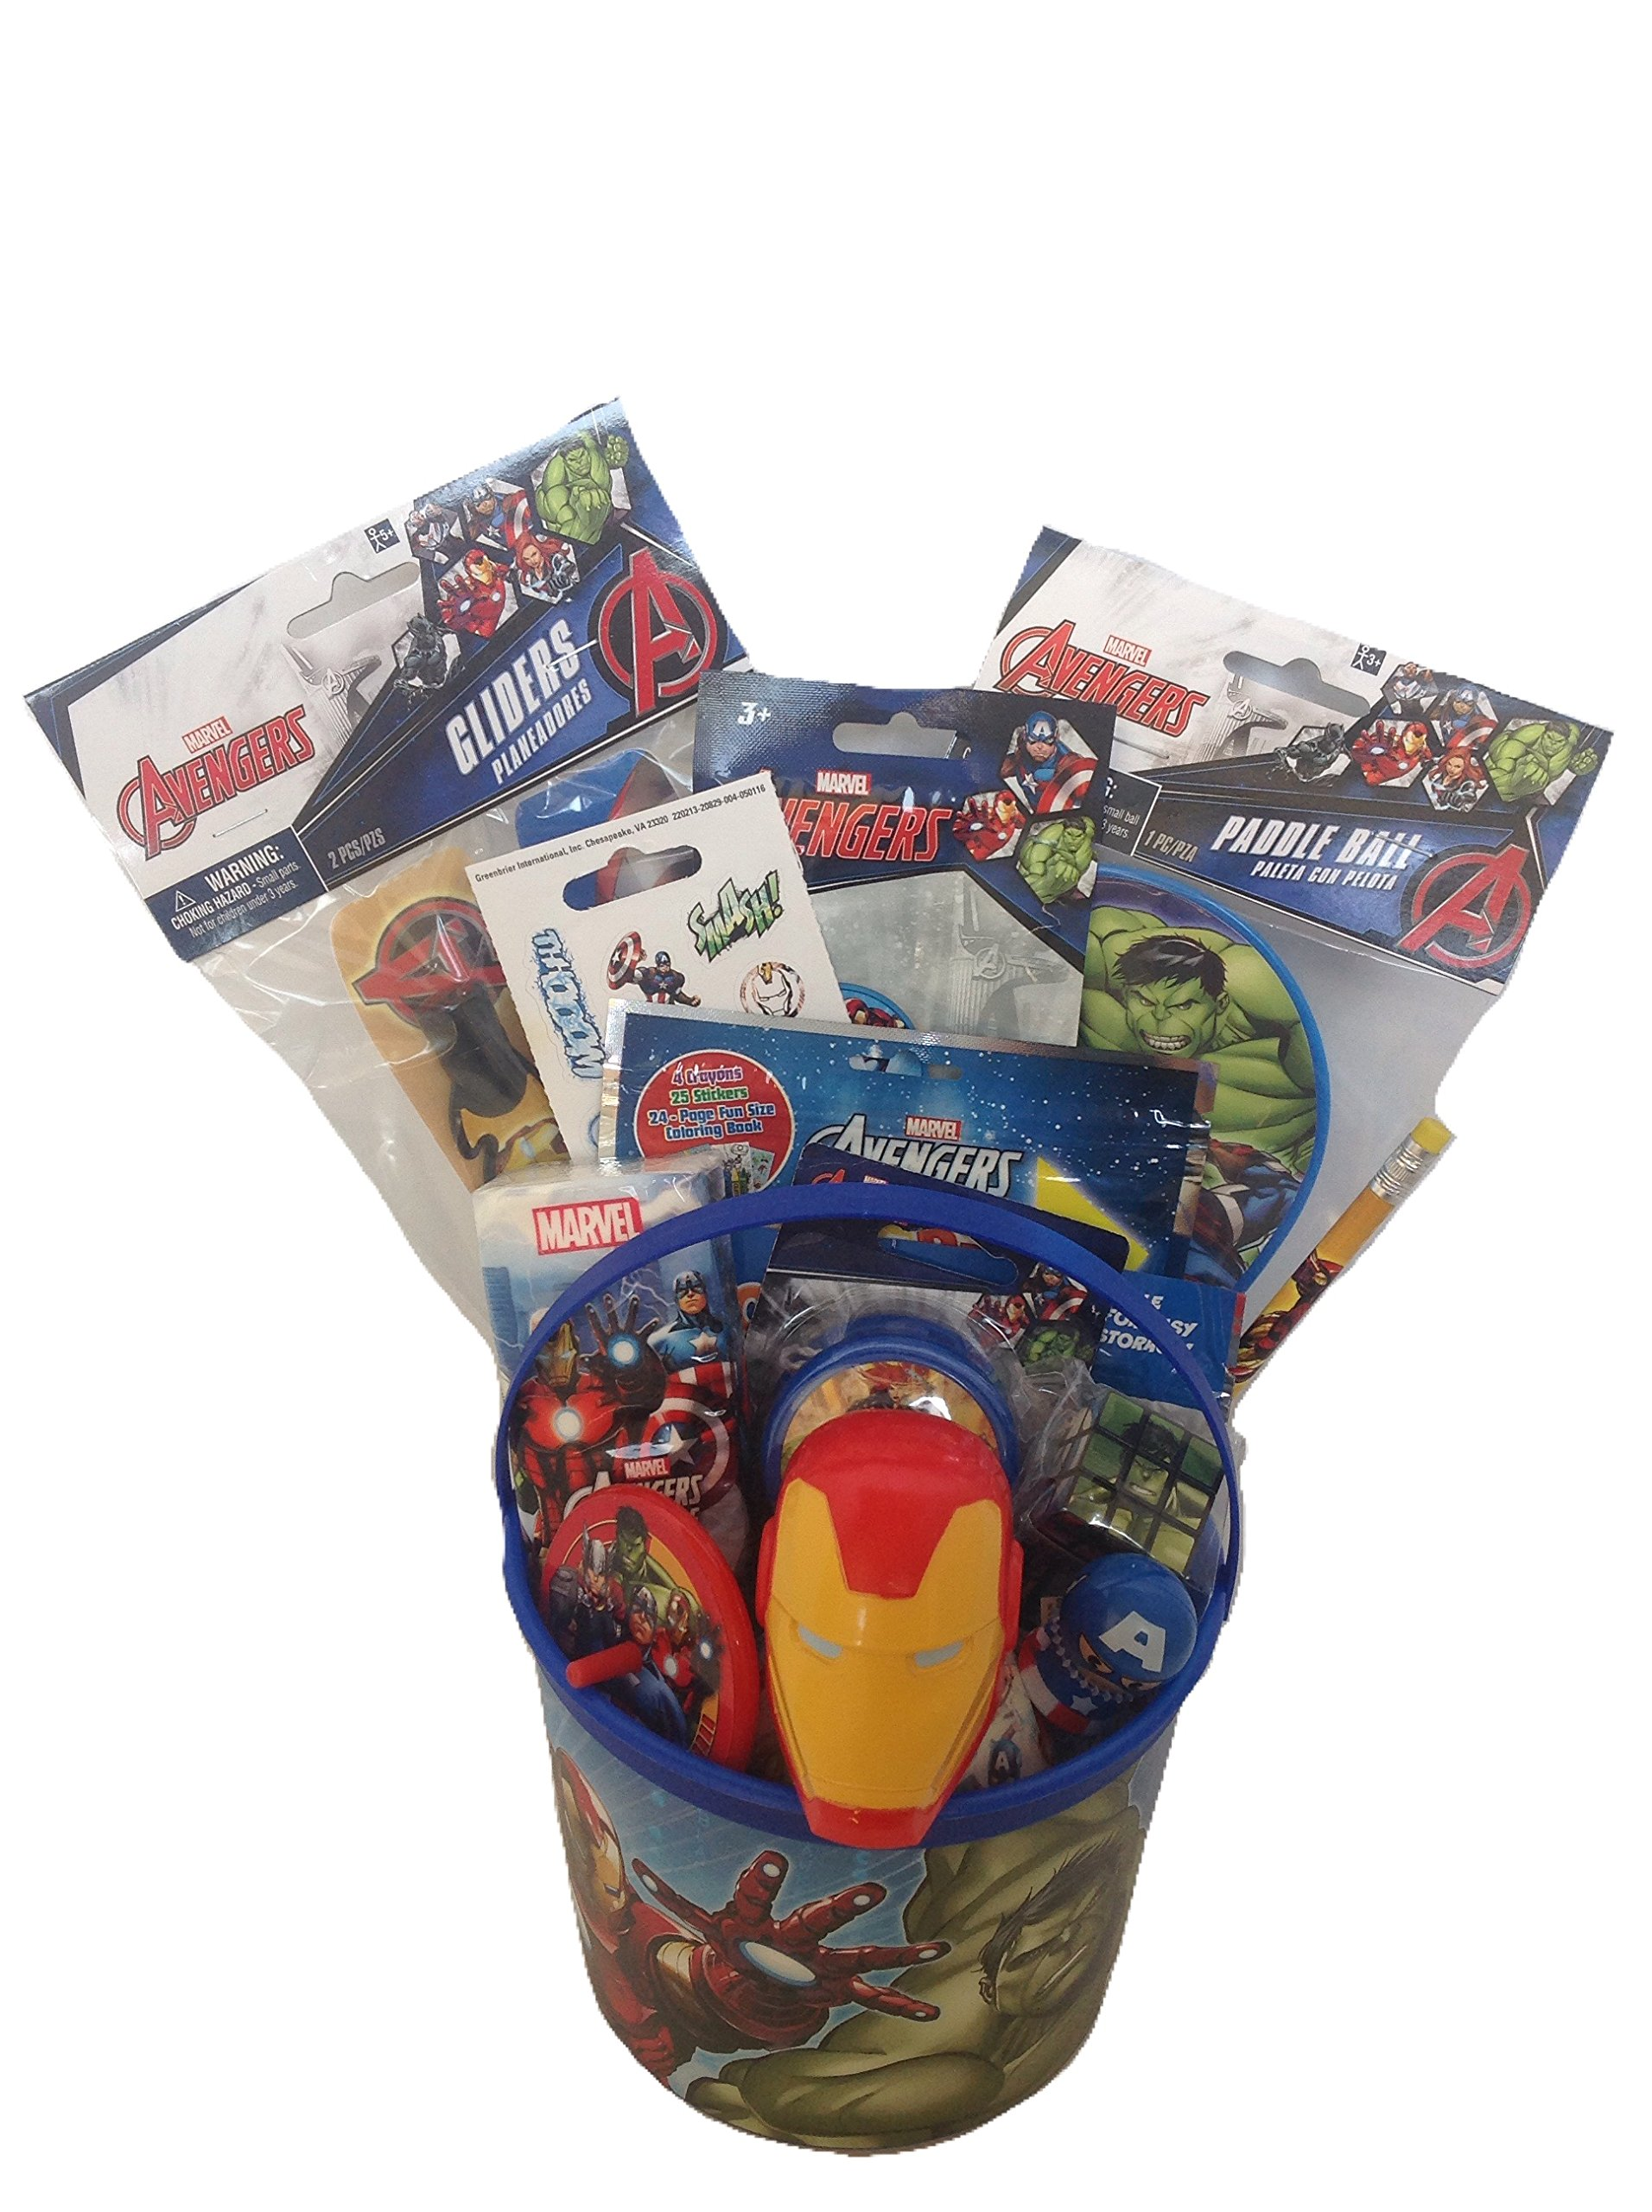 Marvel Avengers Small Bucket of Fun 10 Piece Gift Set Perfect for Easter Basket, Birthday, or any other Special Occassion